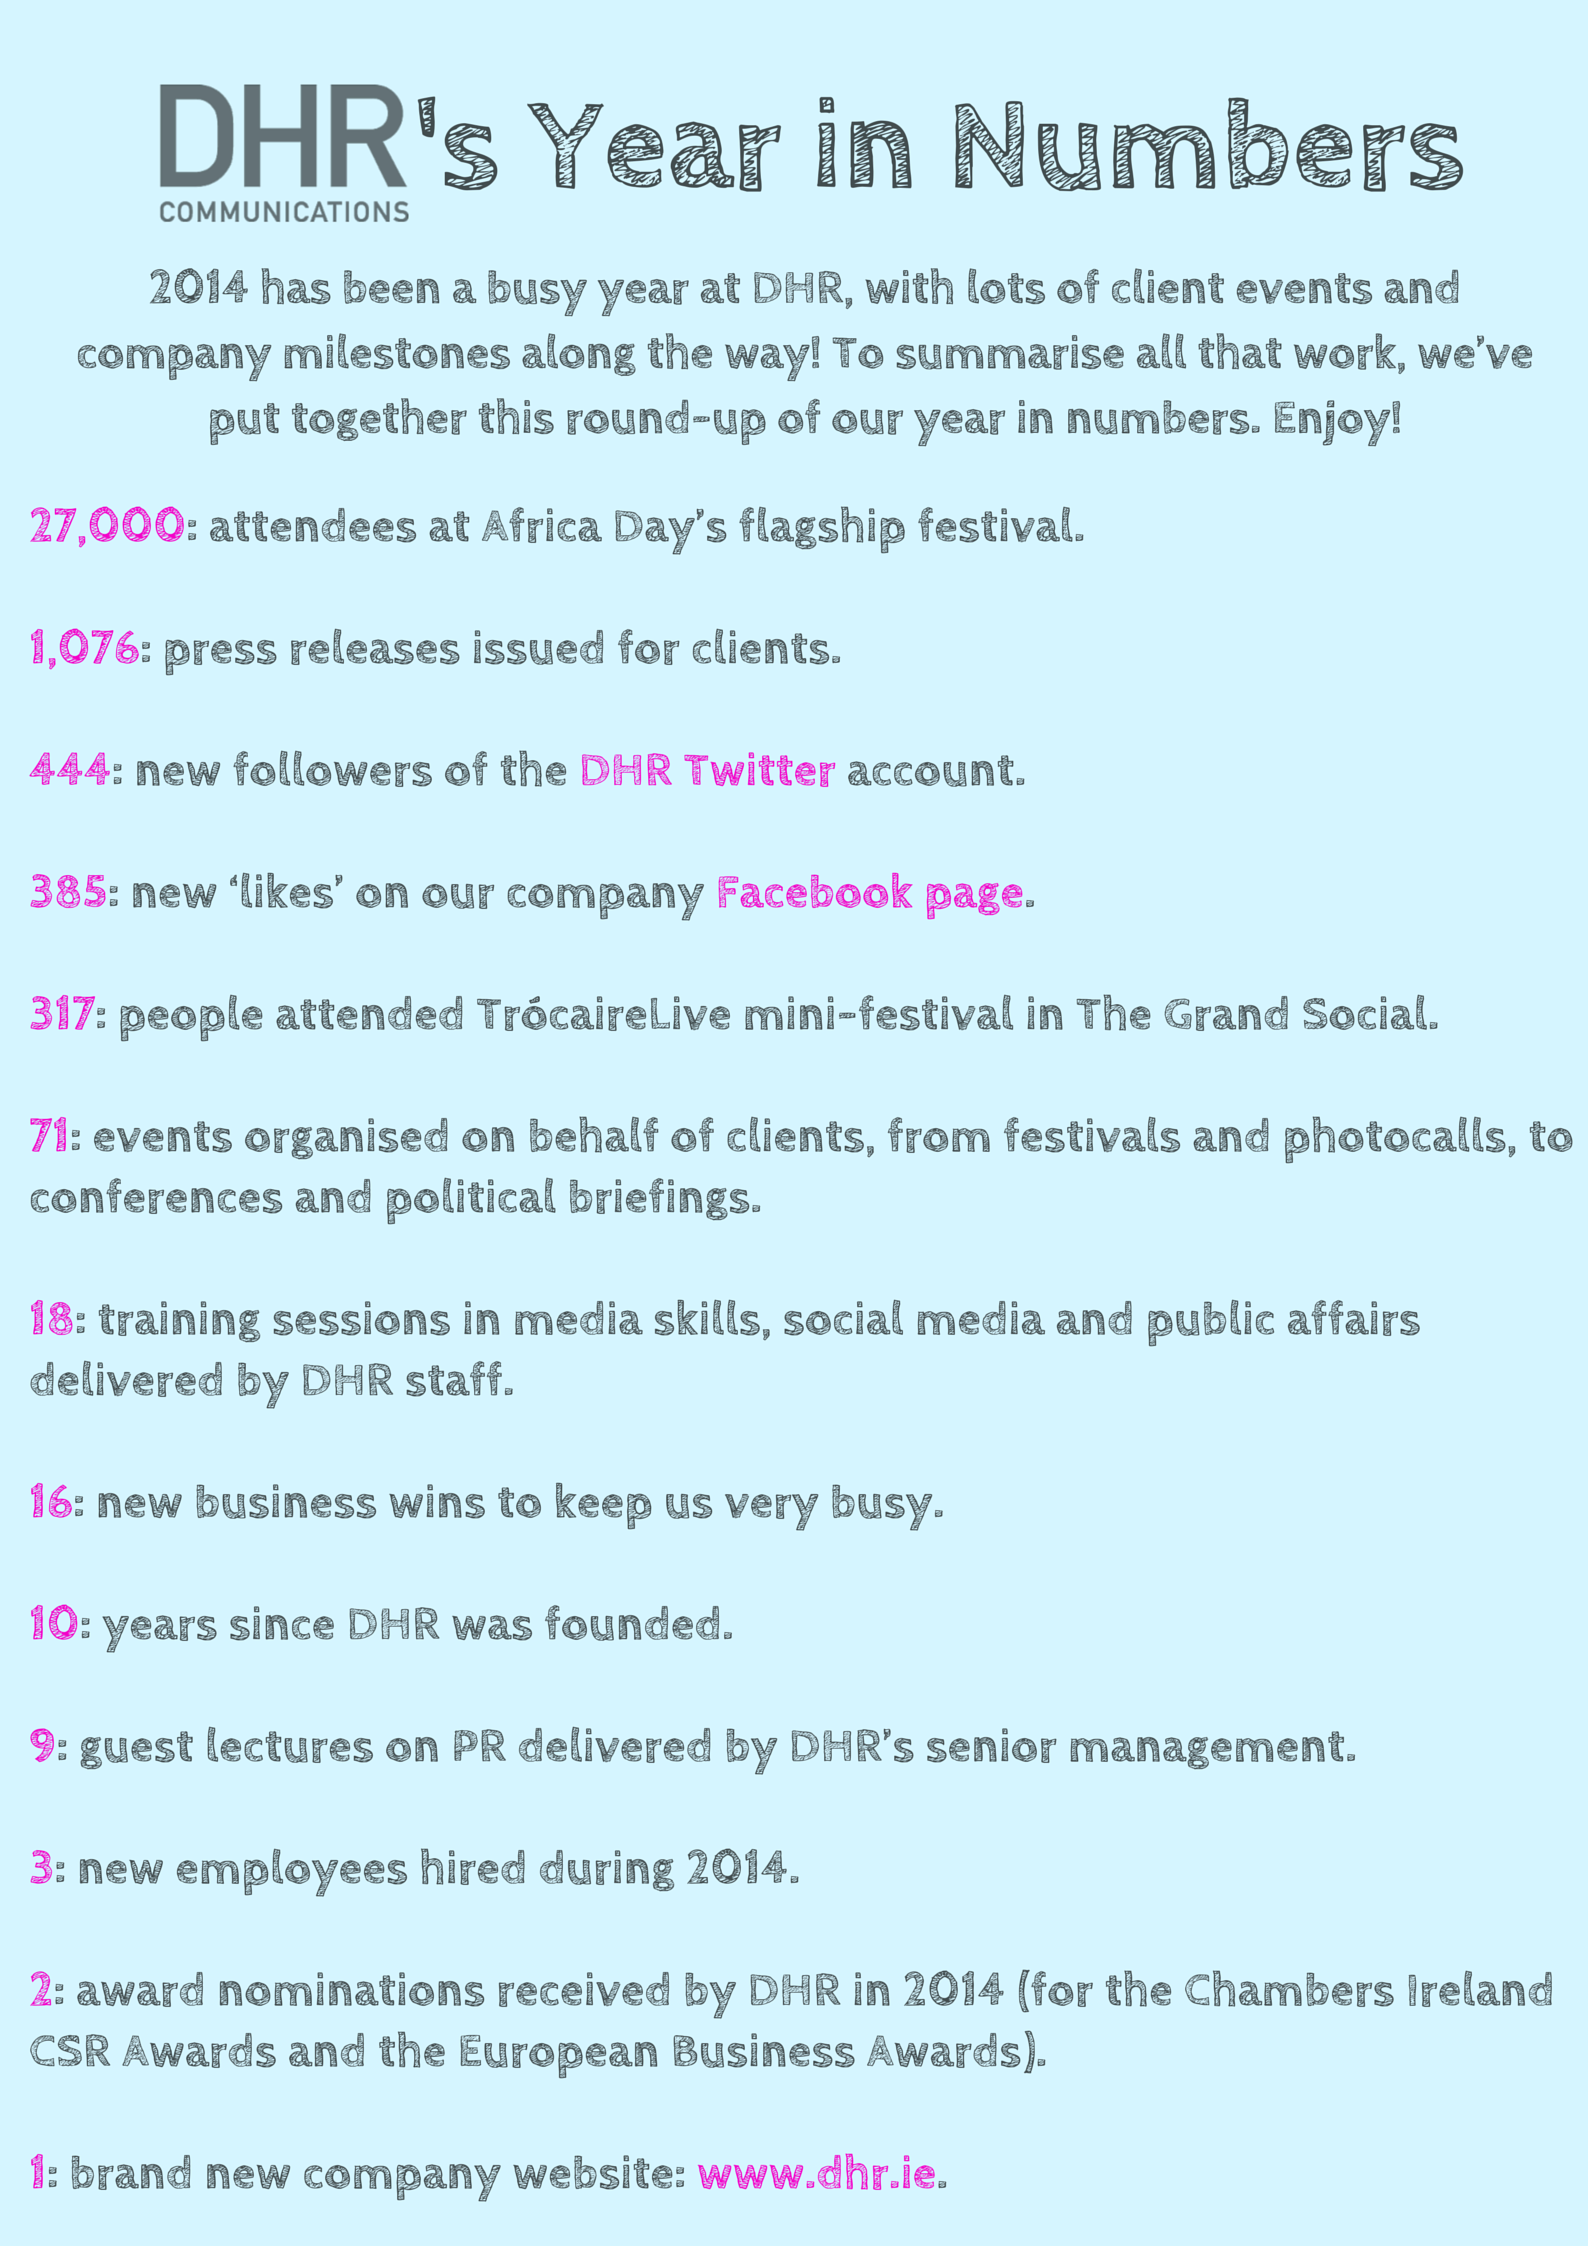 DHR's Year in Numbers